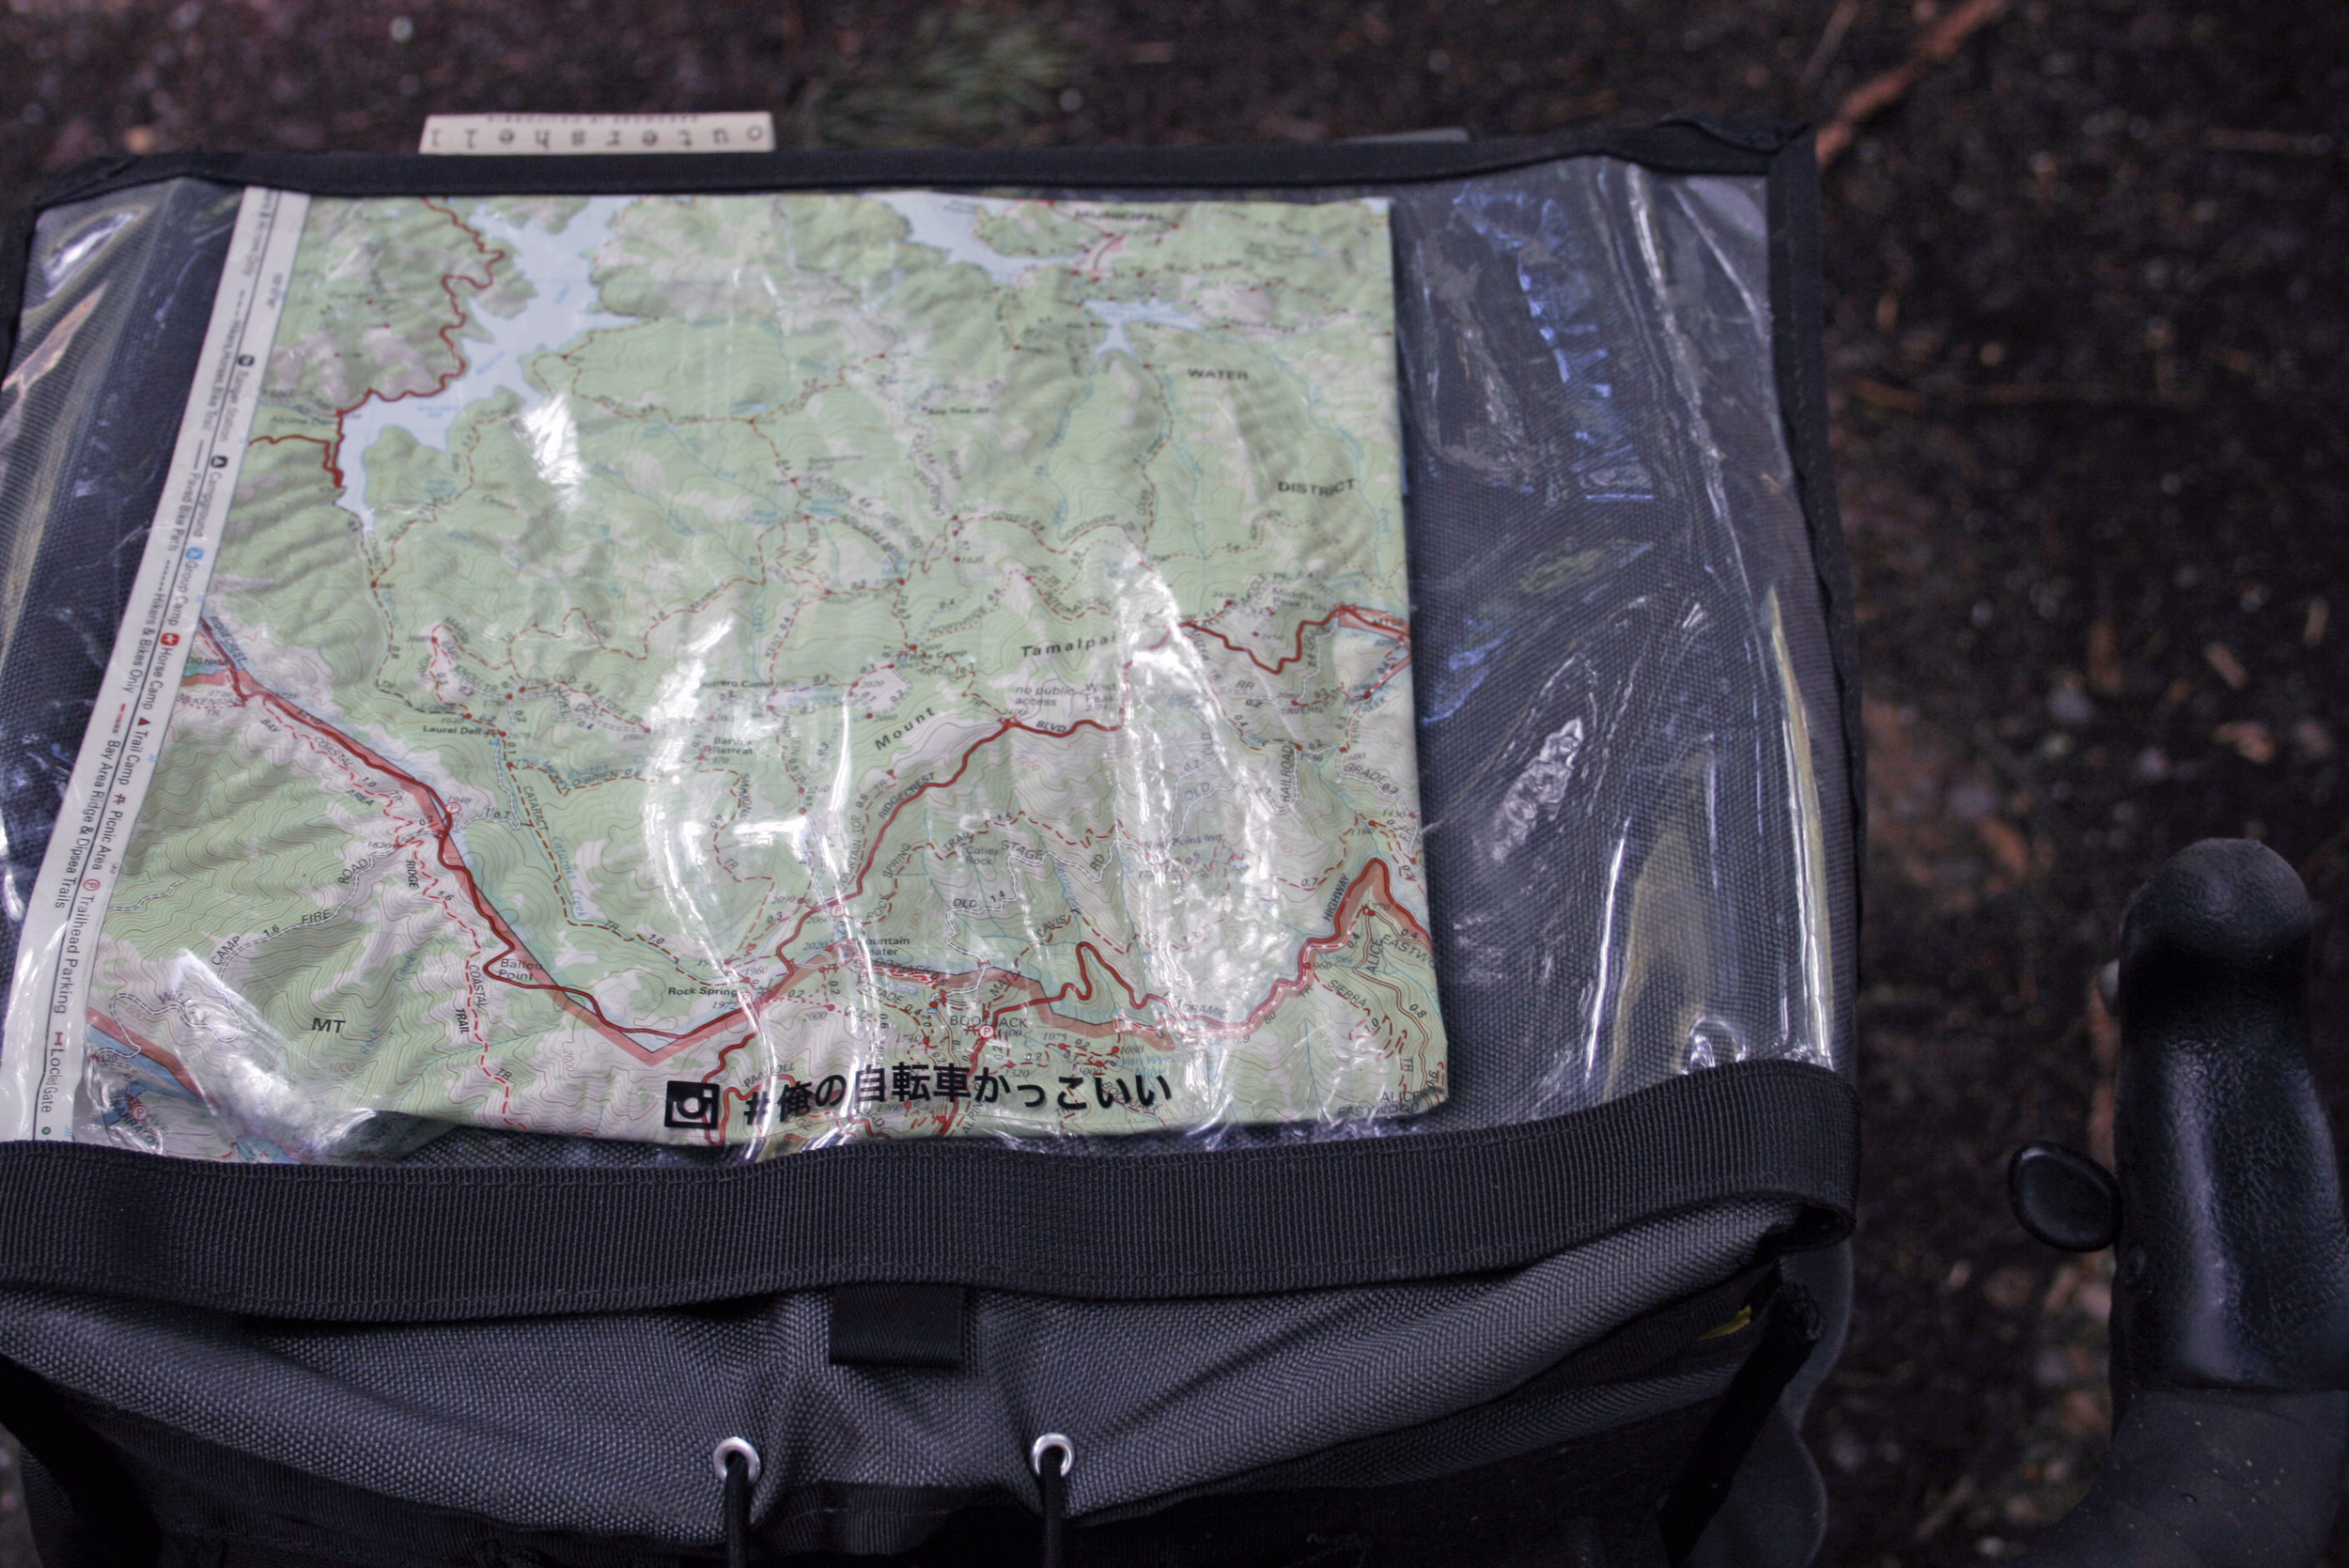 Tom Harrison Map in the Rack Bag Clear Top